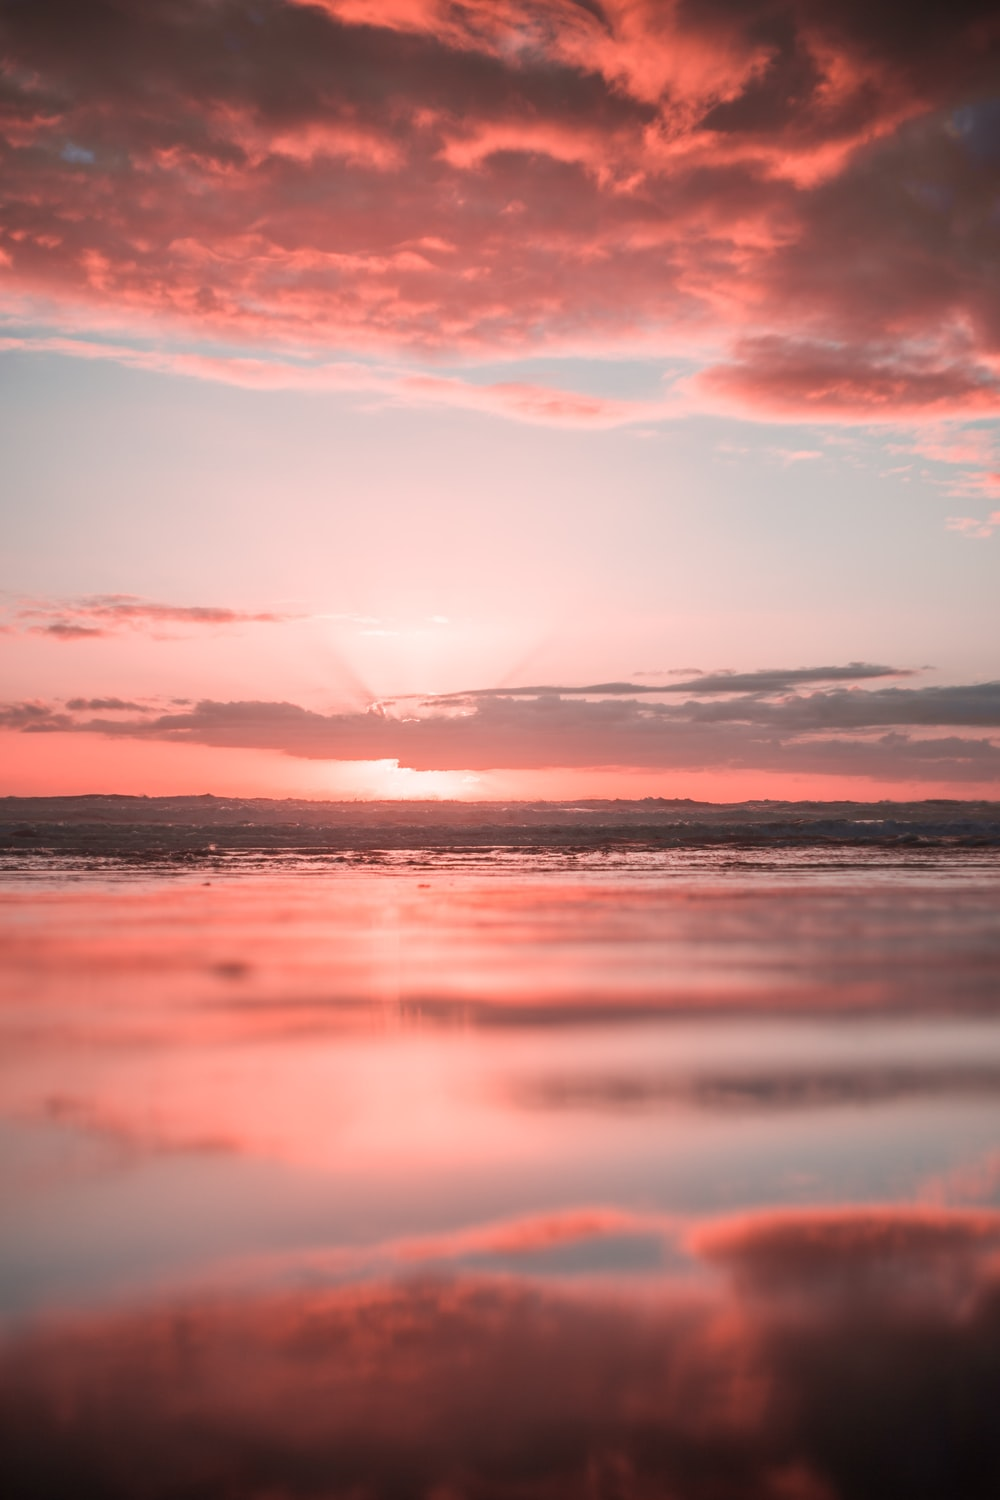 Stunning Pink Sunset Pictures Download Free Images On